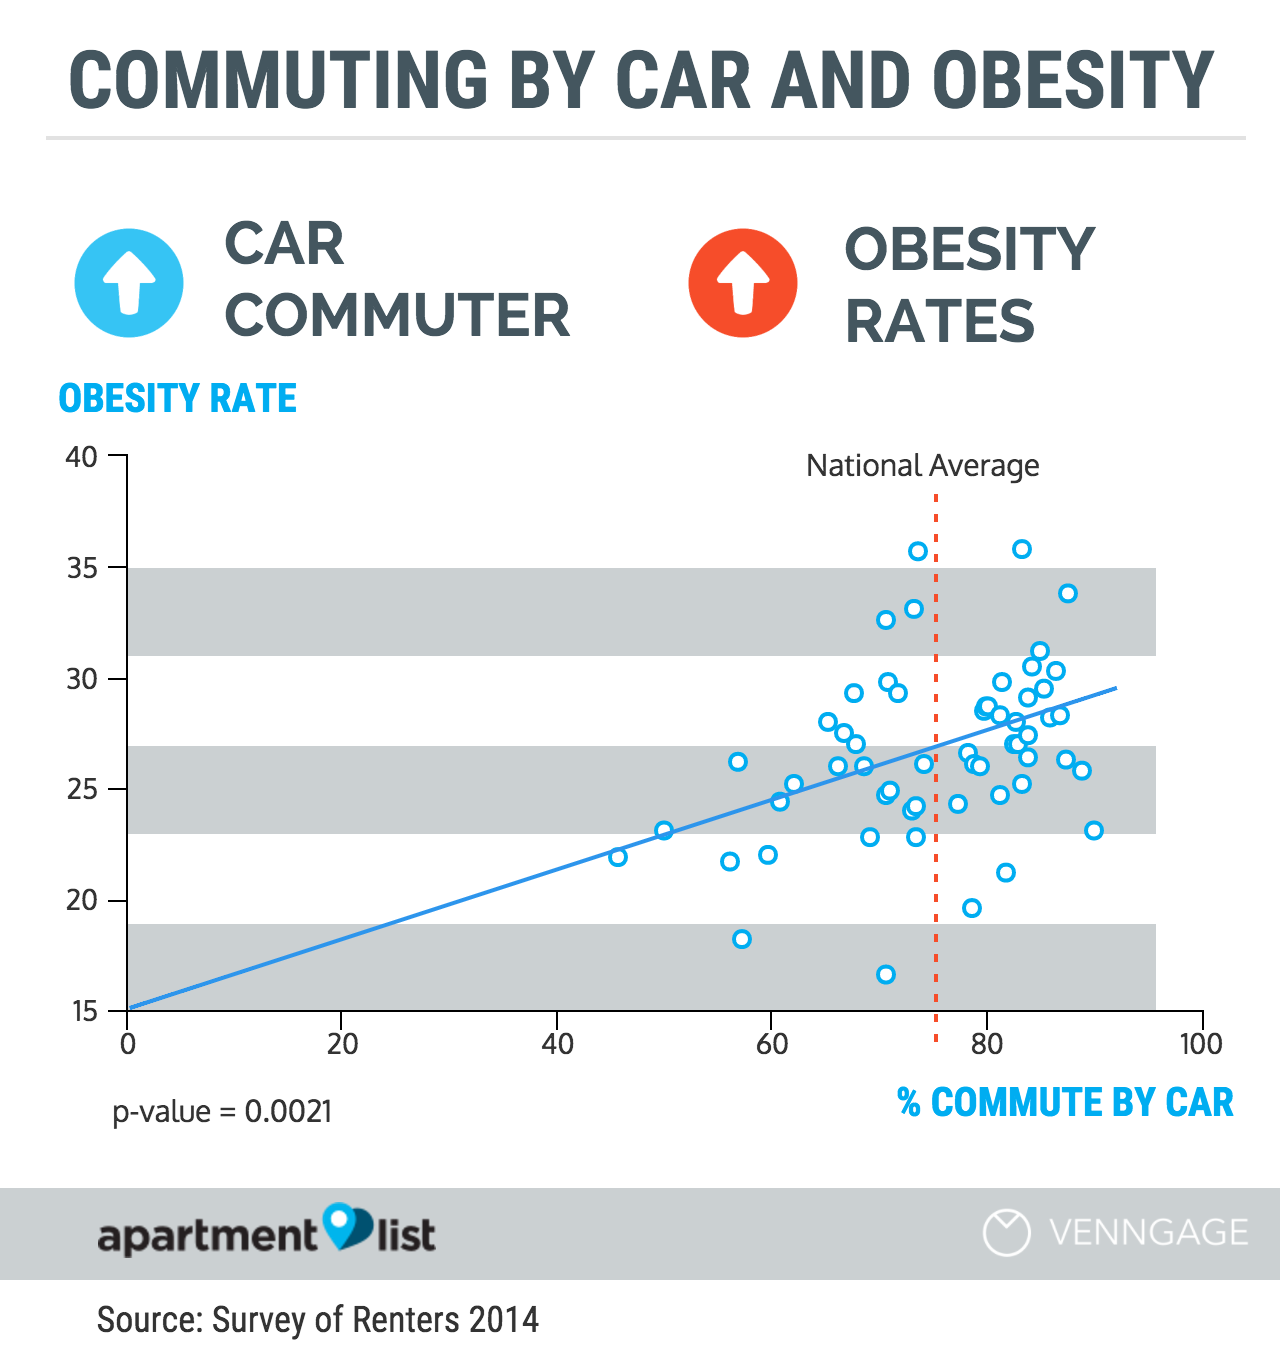 commuting by car and obesity